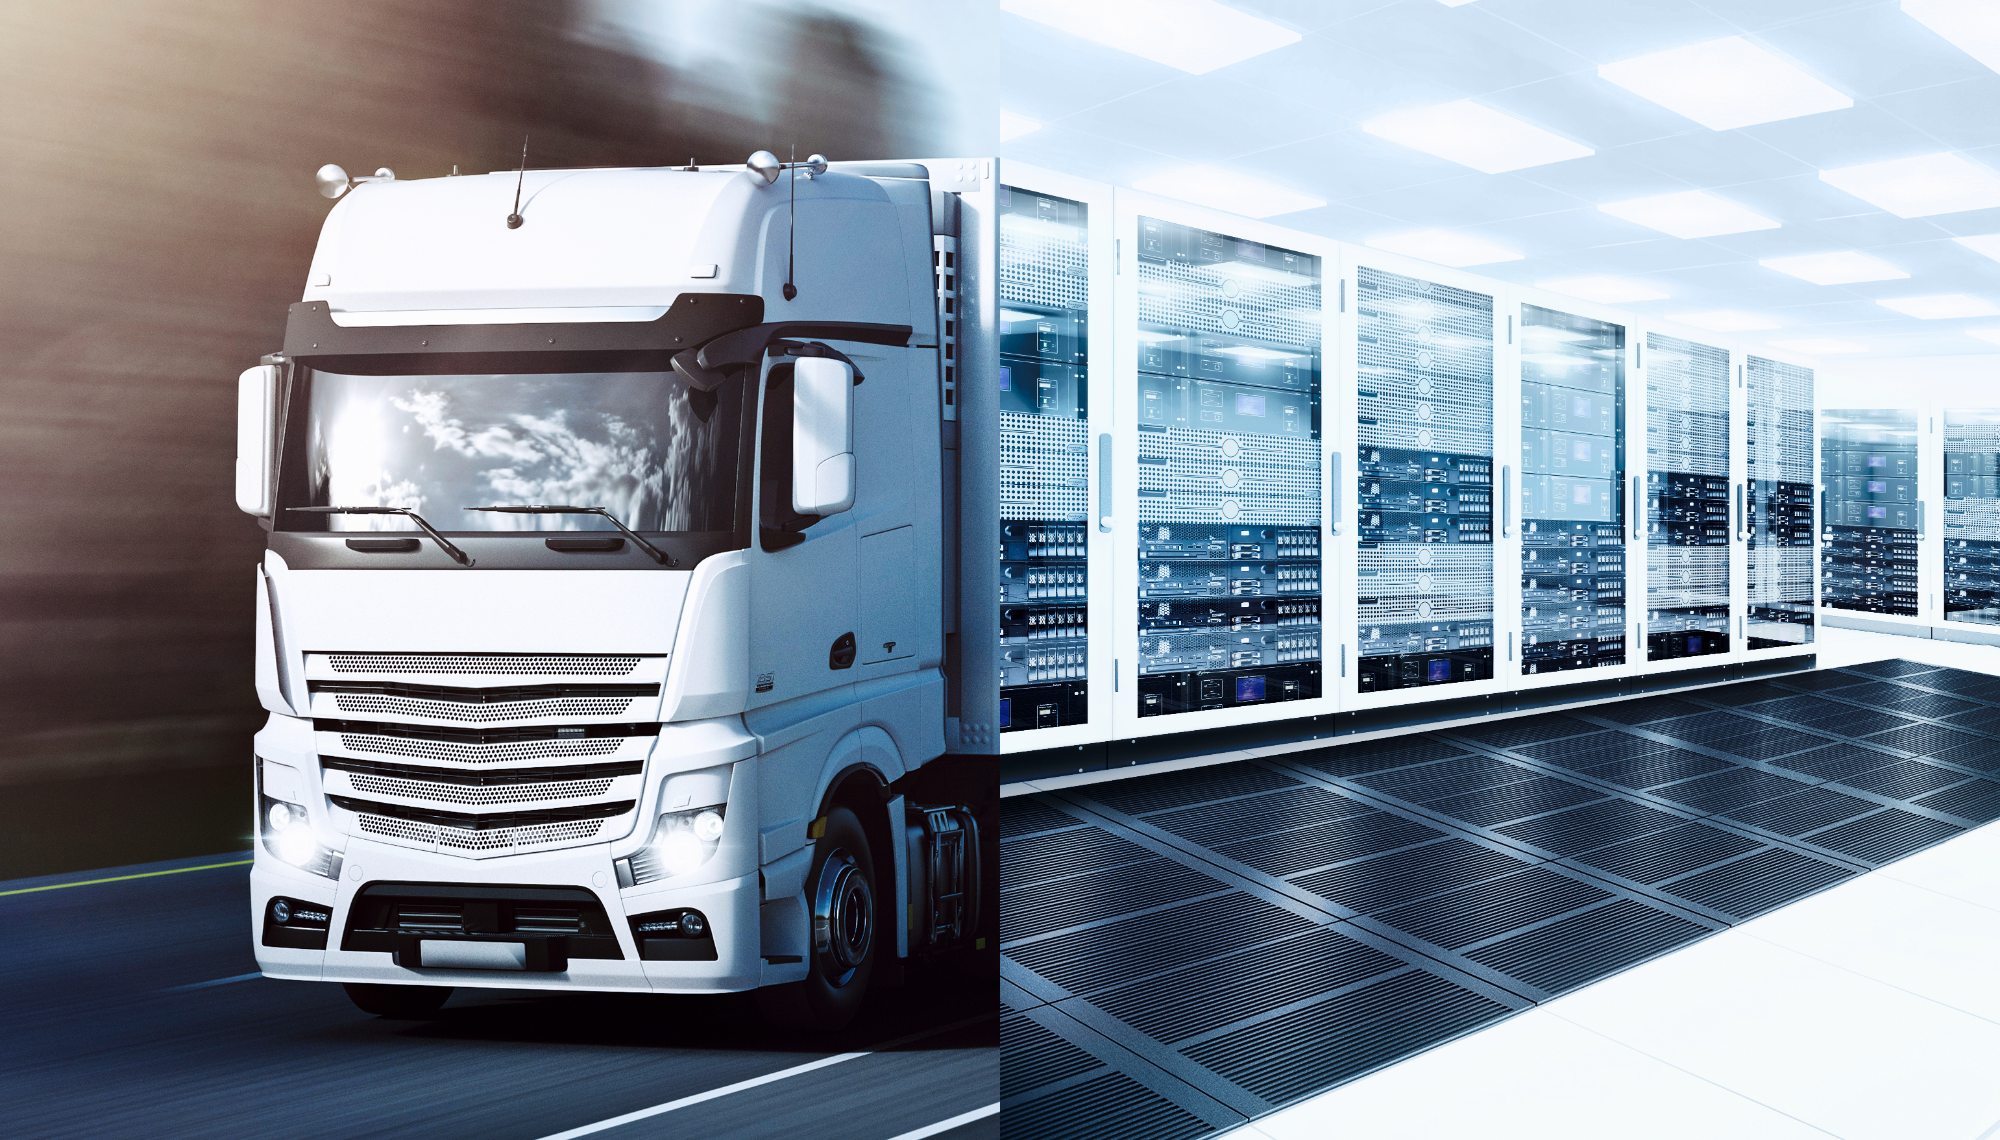 BIG DATA INTERFACES – THE KEY TO MORE FLEET MANAGEMENT EFFICIENCY